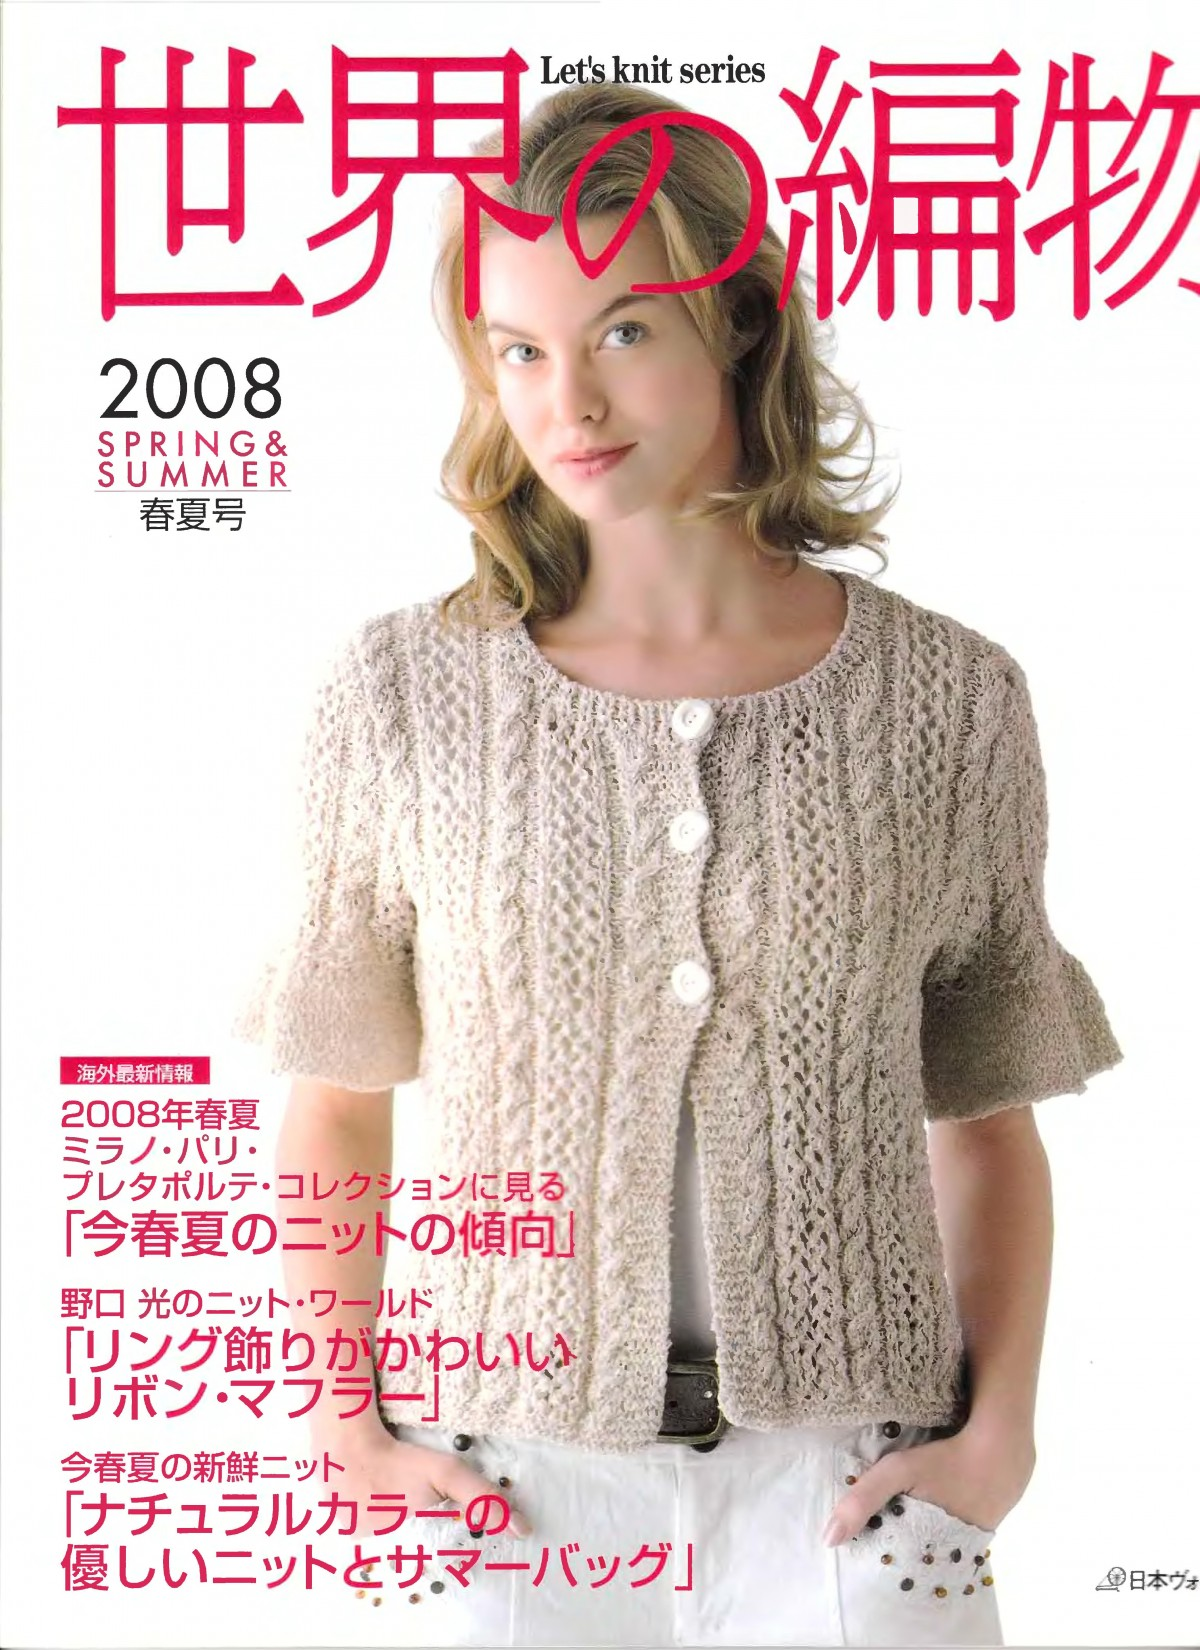 Lets-knit-series-NV4359-2008-Spring-Summer-sp-kr_1.jpg